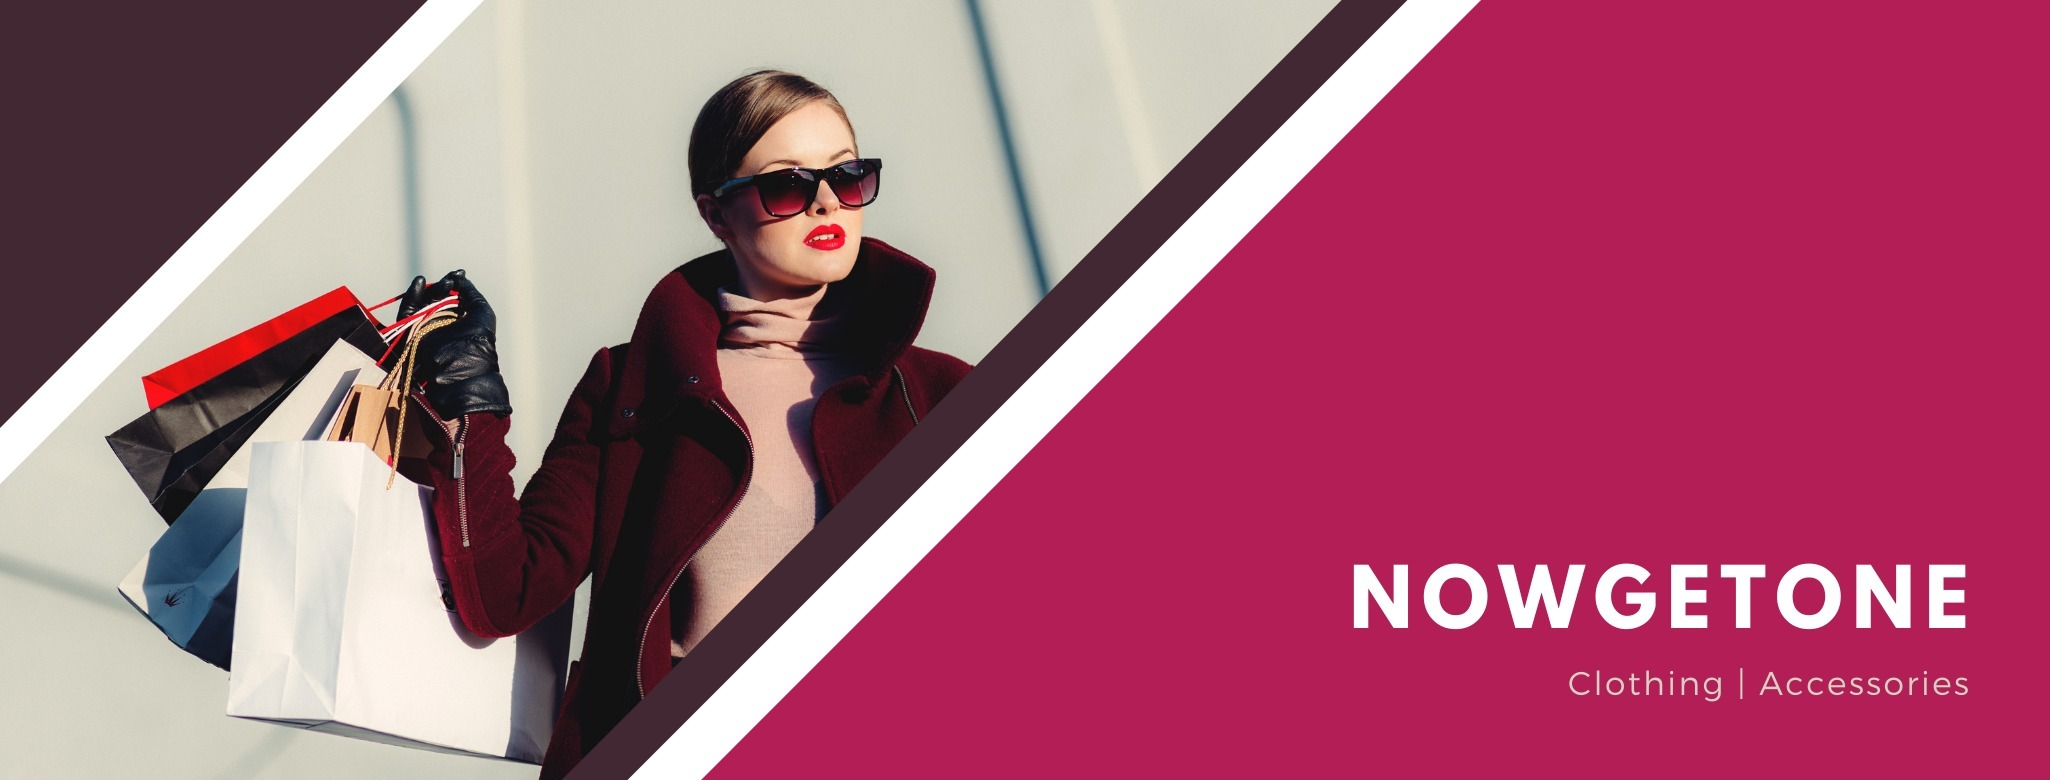 Now Get One (@nowgetone) Cover Image